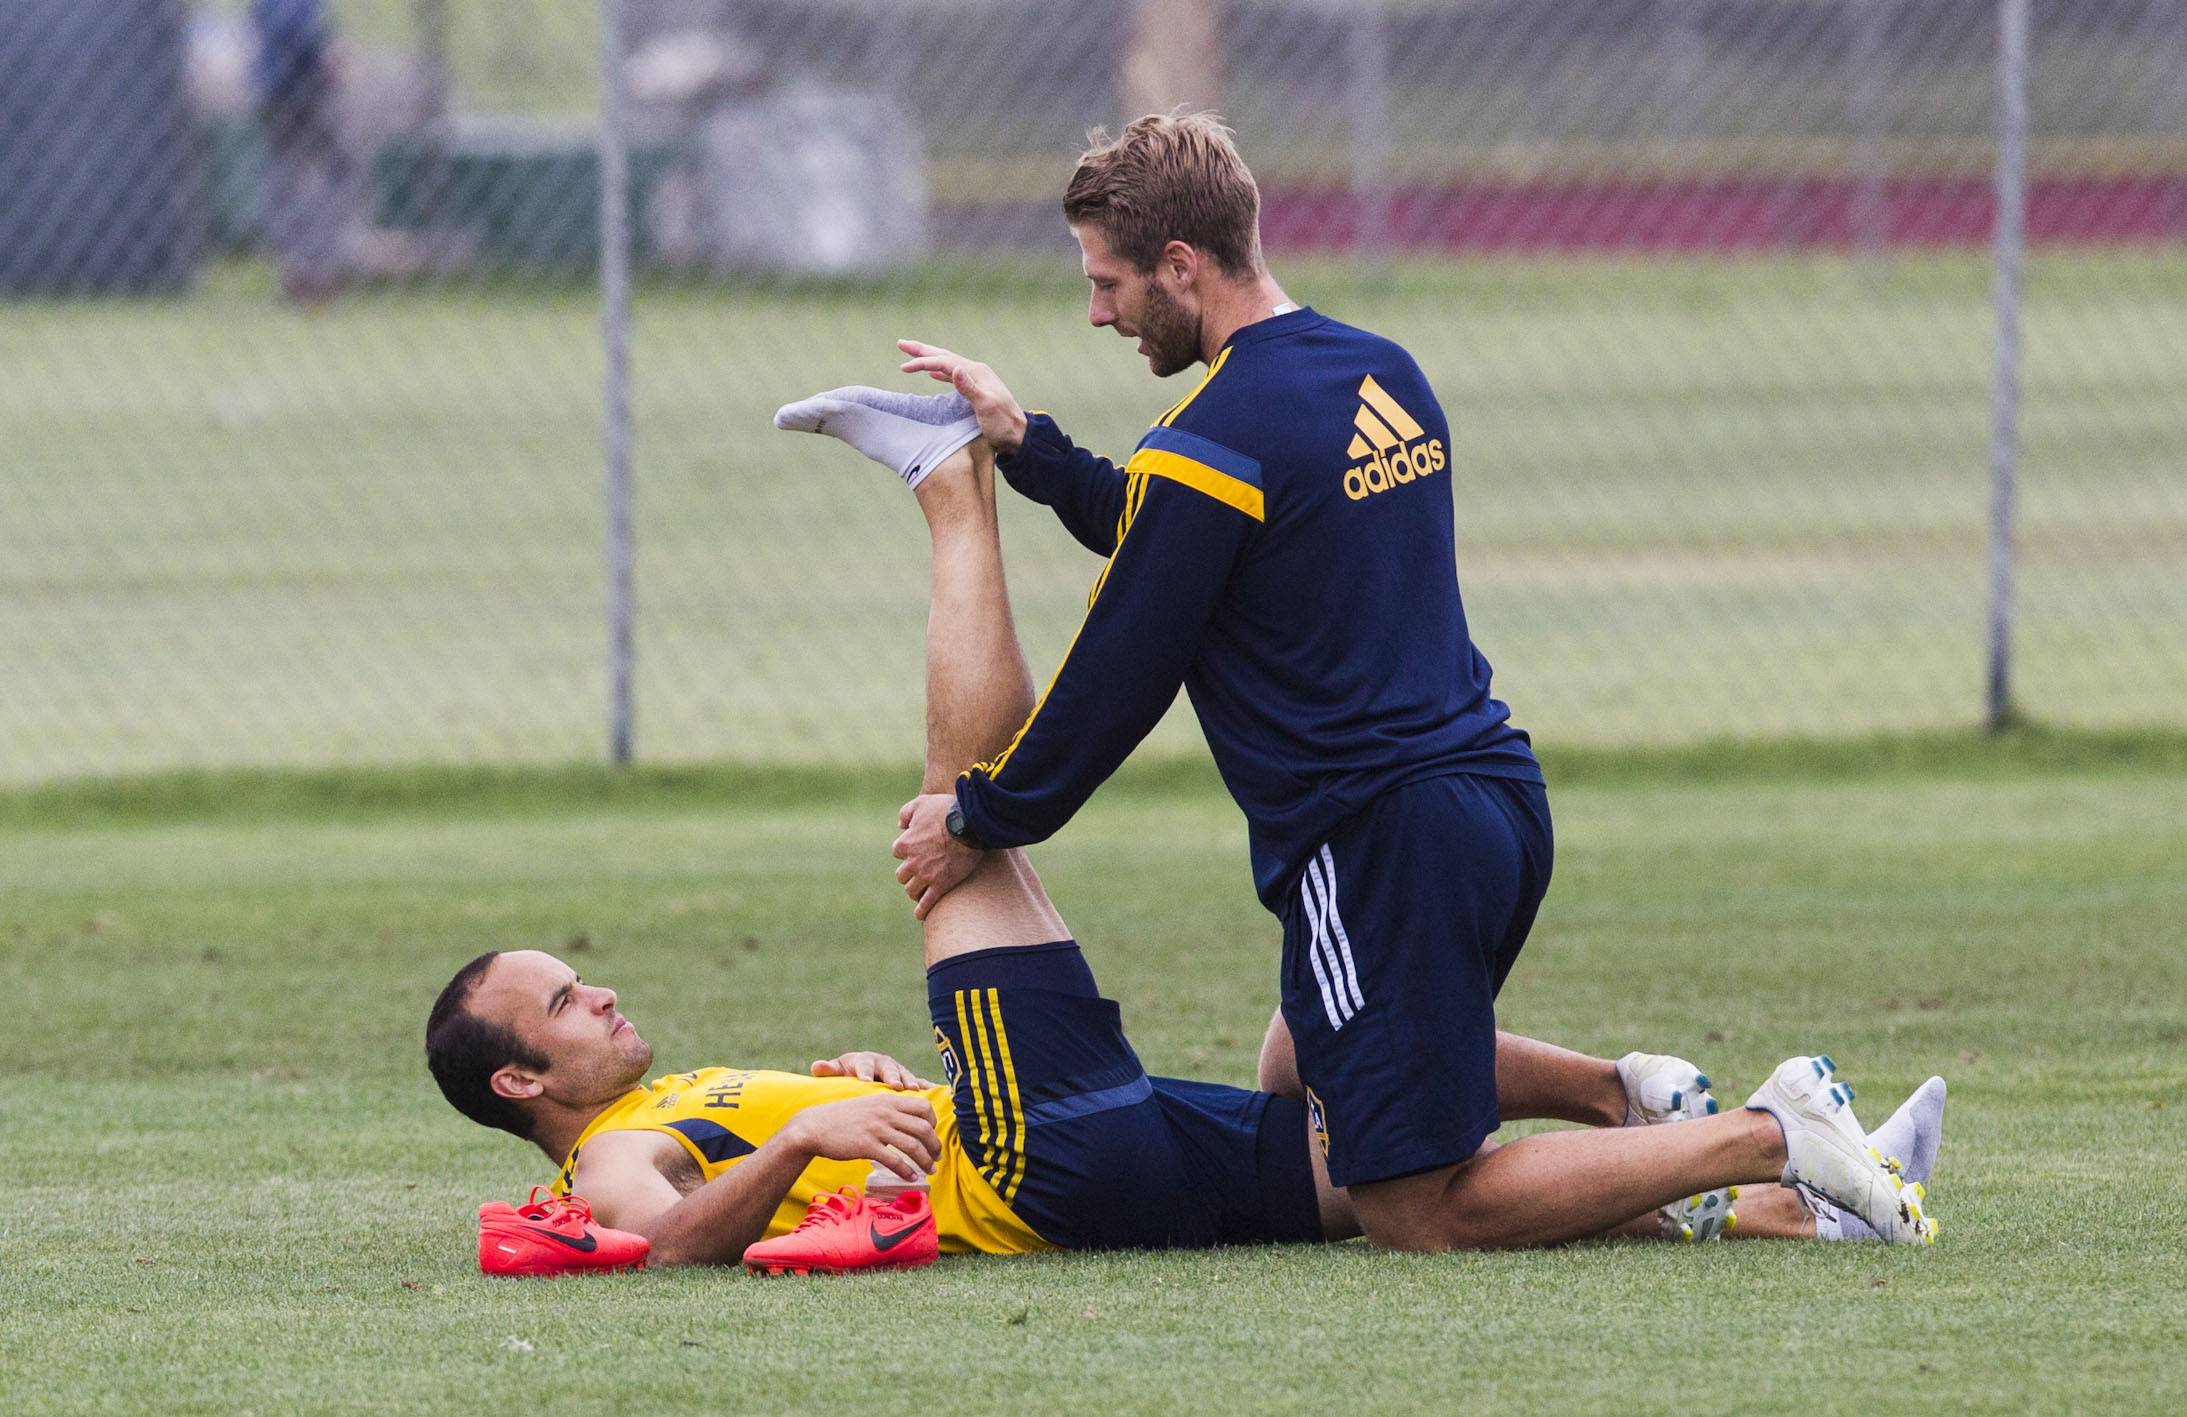 Los Angeles Galaxy forward Landon Donovan is assisted in stretching by trainer Kurt Andrews during a training session at StubHub Center in Carson, Calif., Saturday, May 24, 2014. Donovan, the most accomplished American player in the history of men's soccer, won't be going to his fourth World Cup. The 32-year-old attacker was among seven players cut Thursday when coach Jurgen Klinsmann got down to the 23-man limit well before the June 2 deadline.